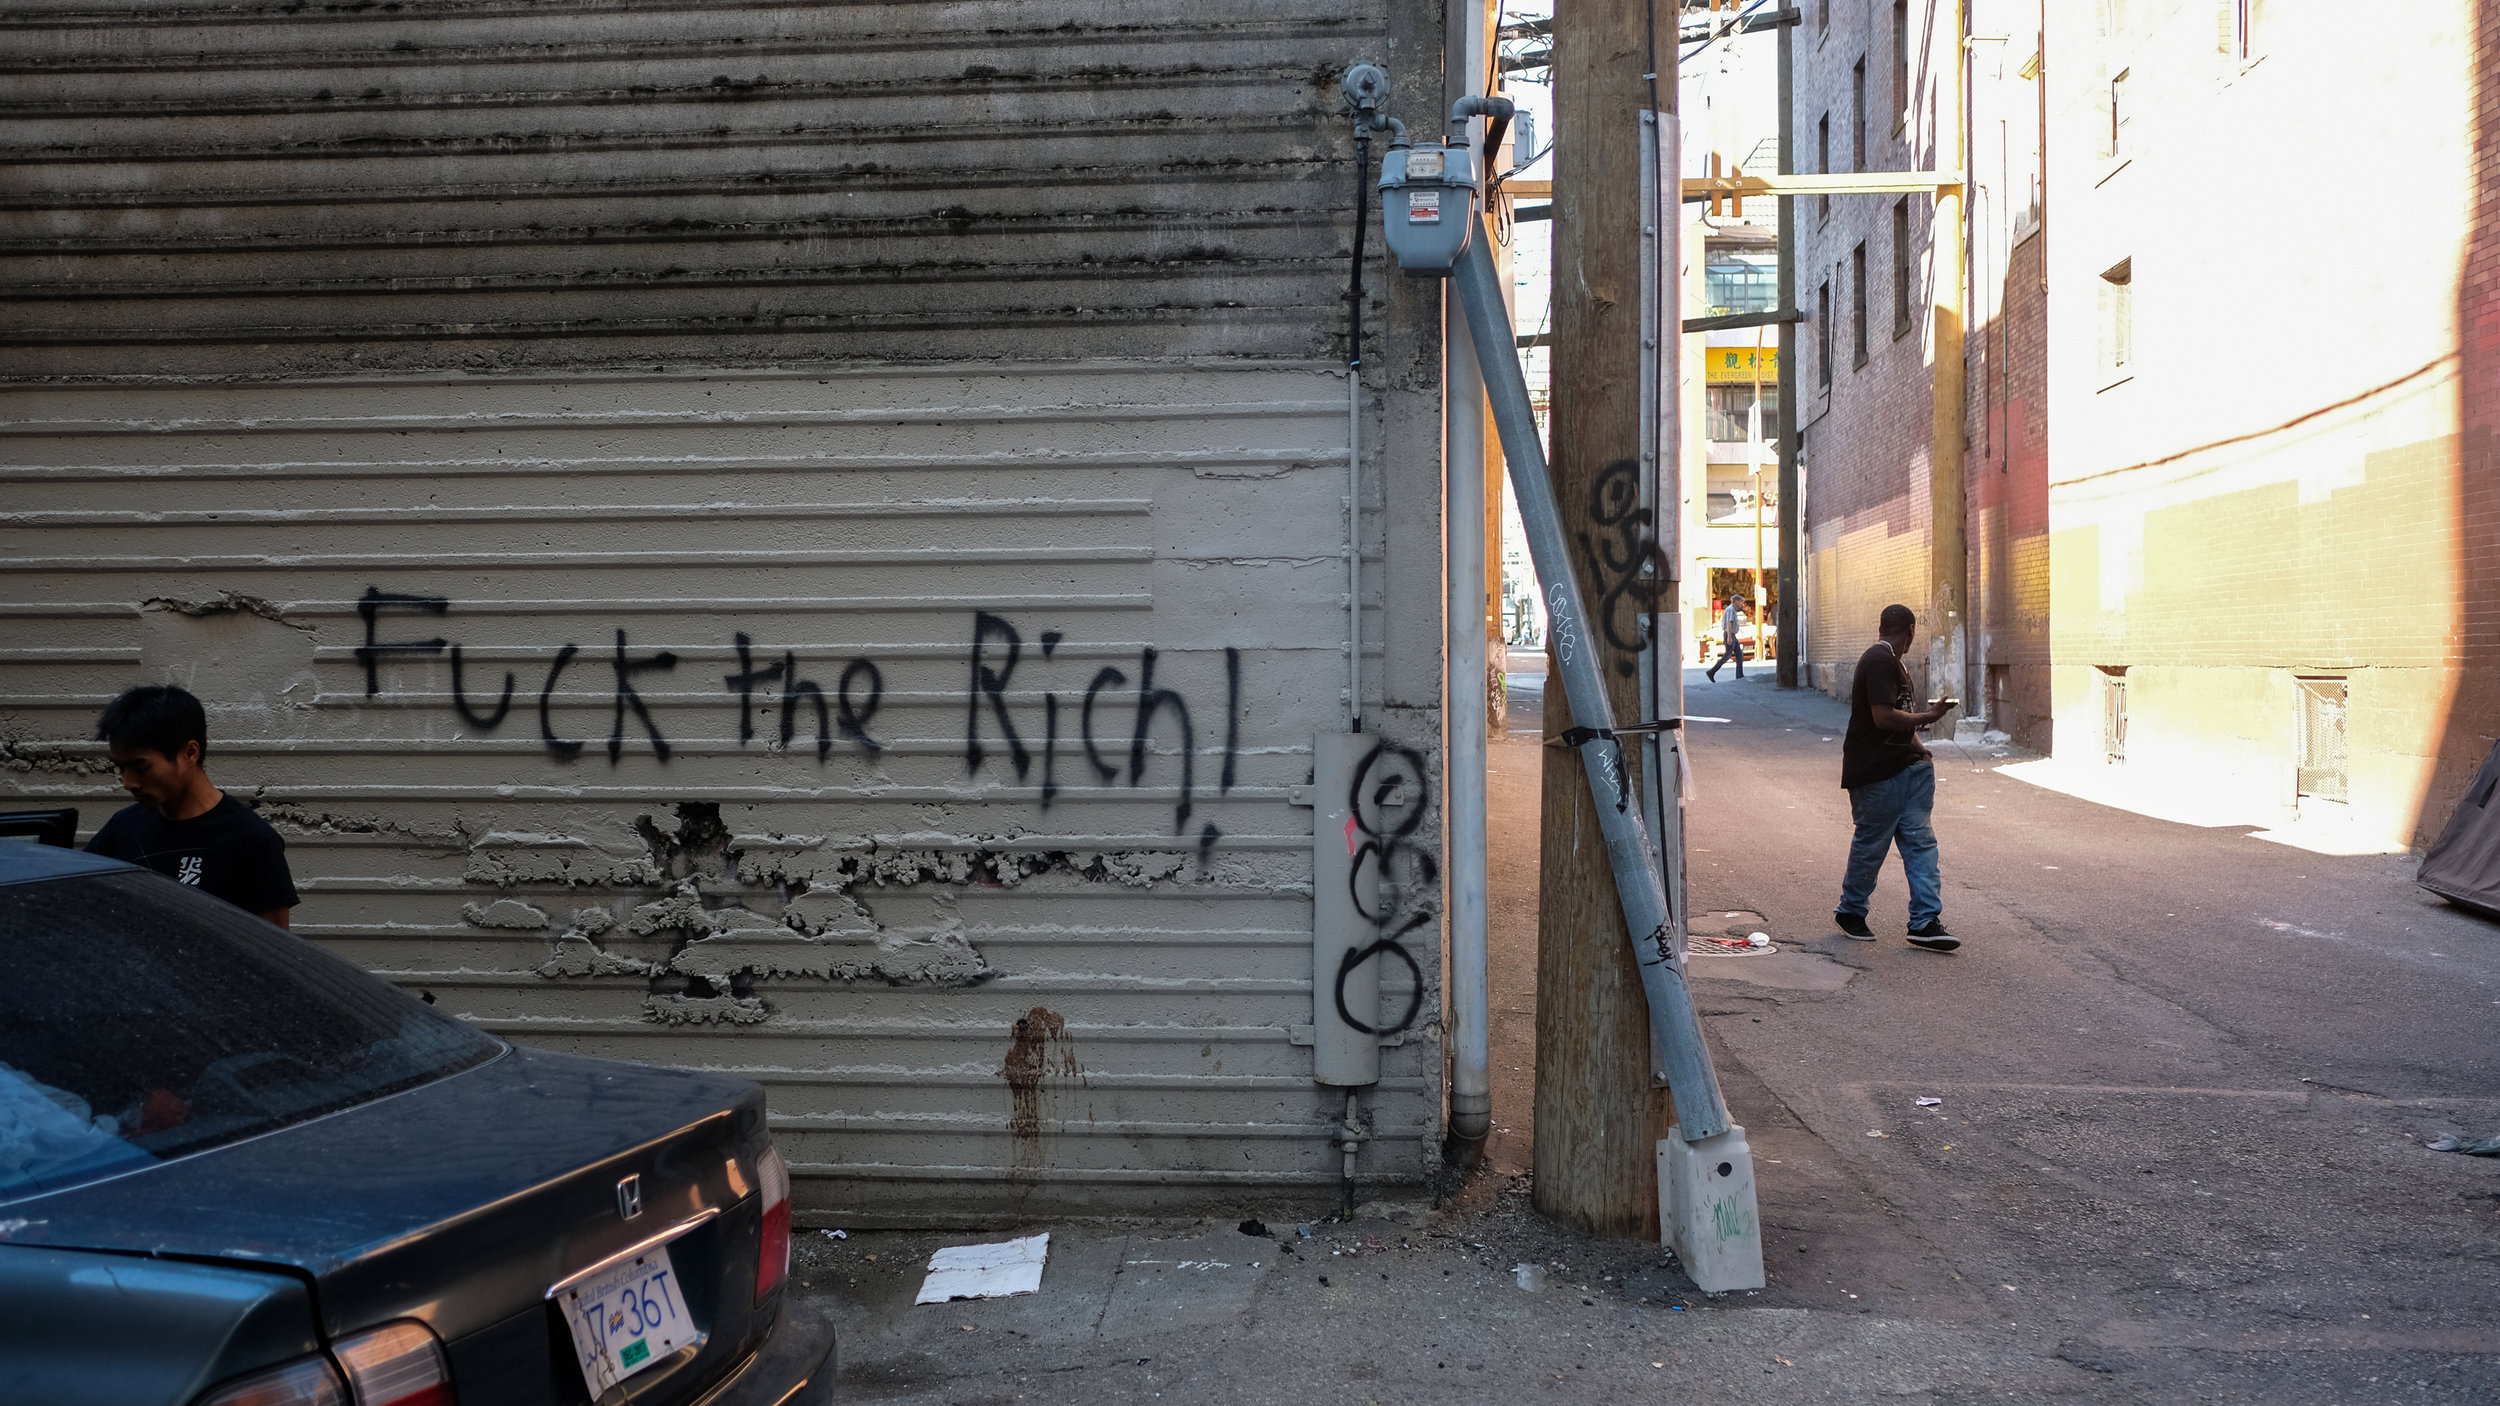 01_VANCOUVER_fuck-the-rich.jpg